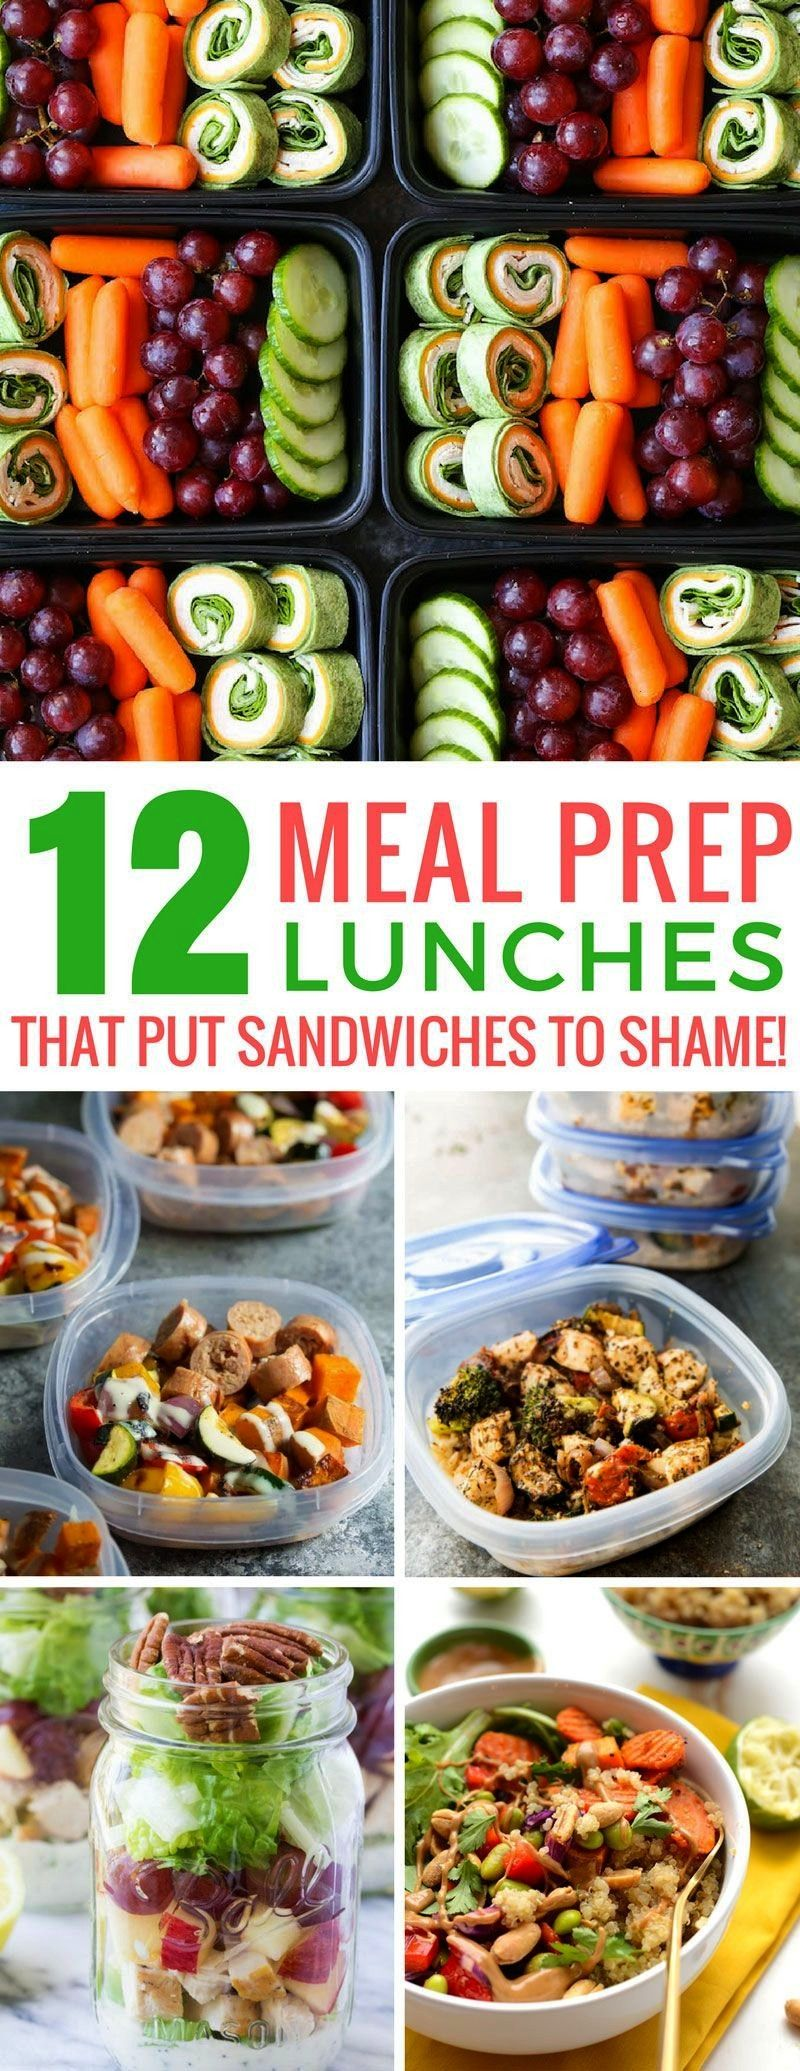 these meal prep lunches - well not get bored eating these recipes! Thanks for sharing!Loving these